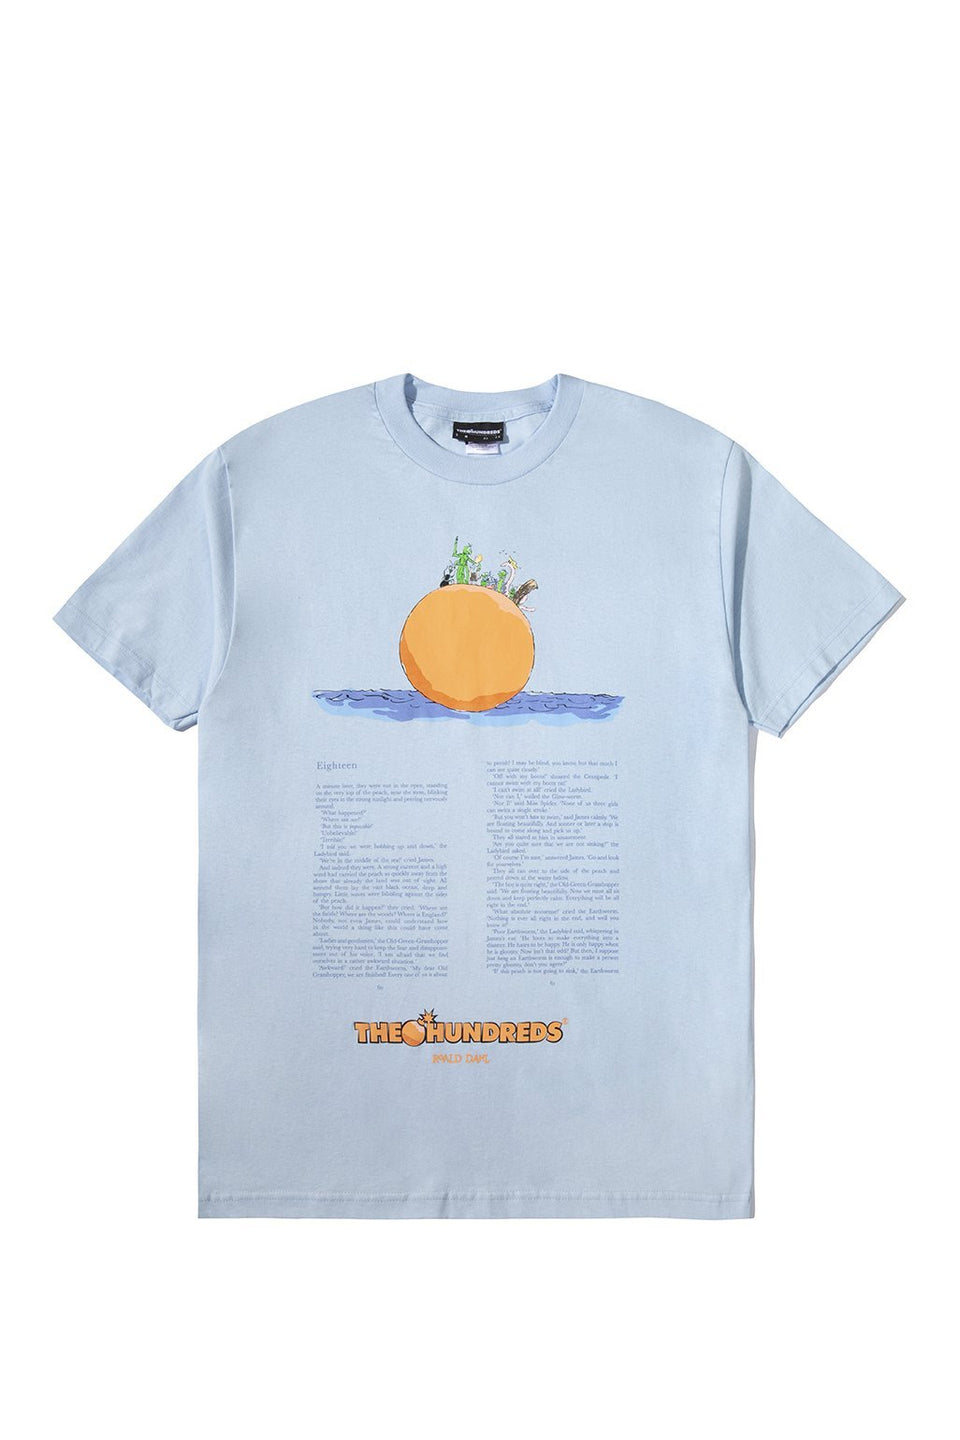 James and the Giant Peach T-Shirt